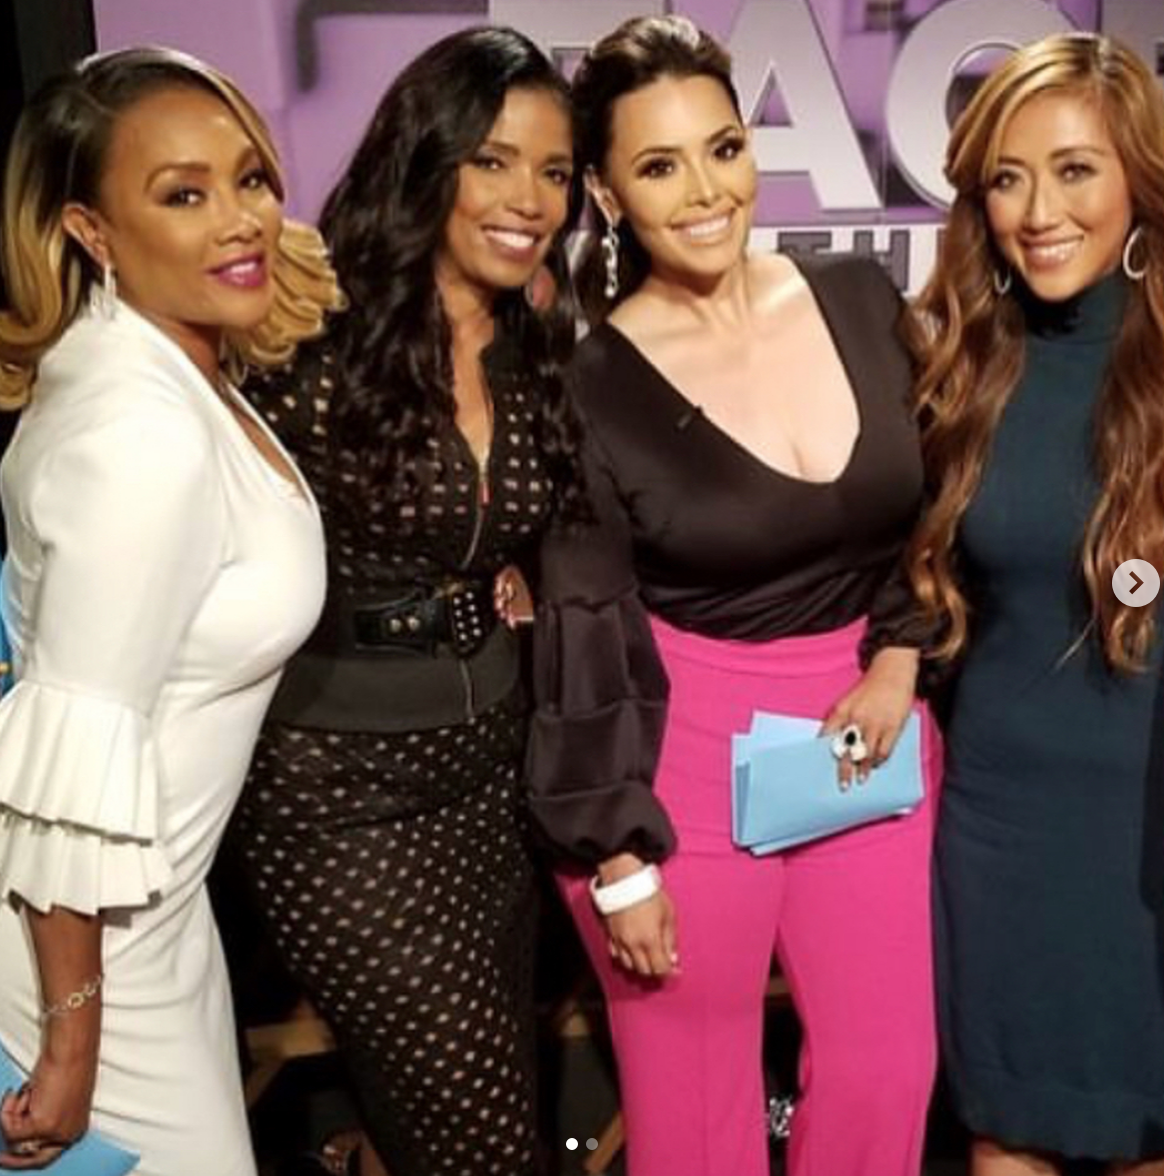 #bts  upcoming new show on  @cbstv  hosted by  @msvfox  Vivica Fox and  @rosiemercado   @facethetruthtv wearing our designers  @sambacjewelry  @hayariparis  and  @rougebyroojamir  Styled by  @tomsoluri_style  Fashion provided by  #ivanbittonstylehouse